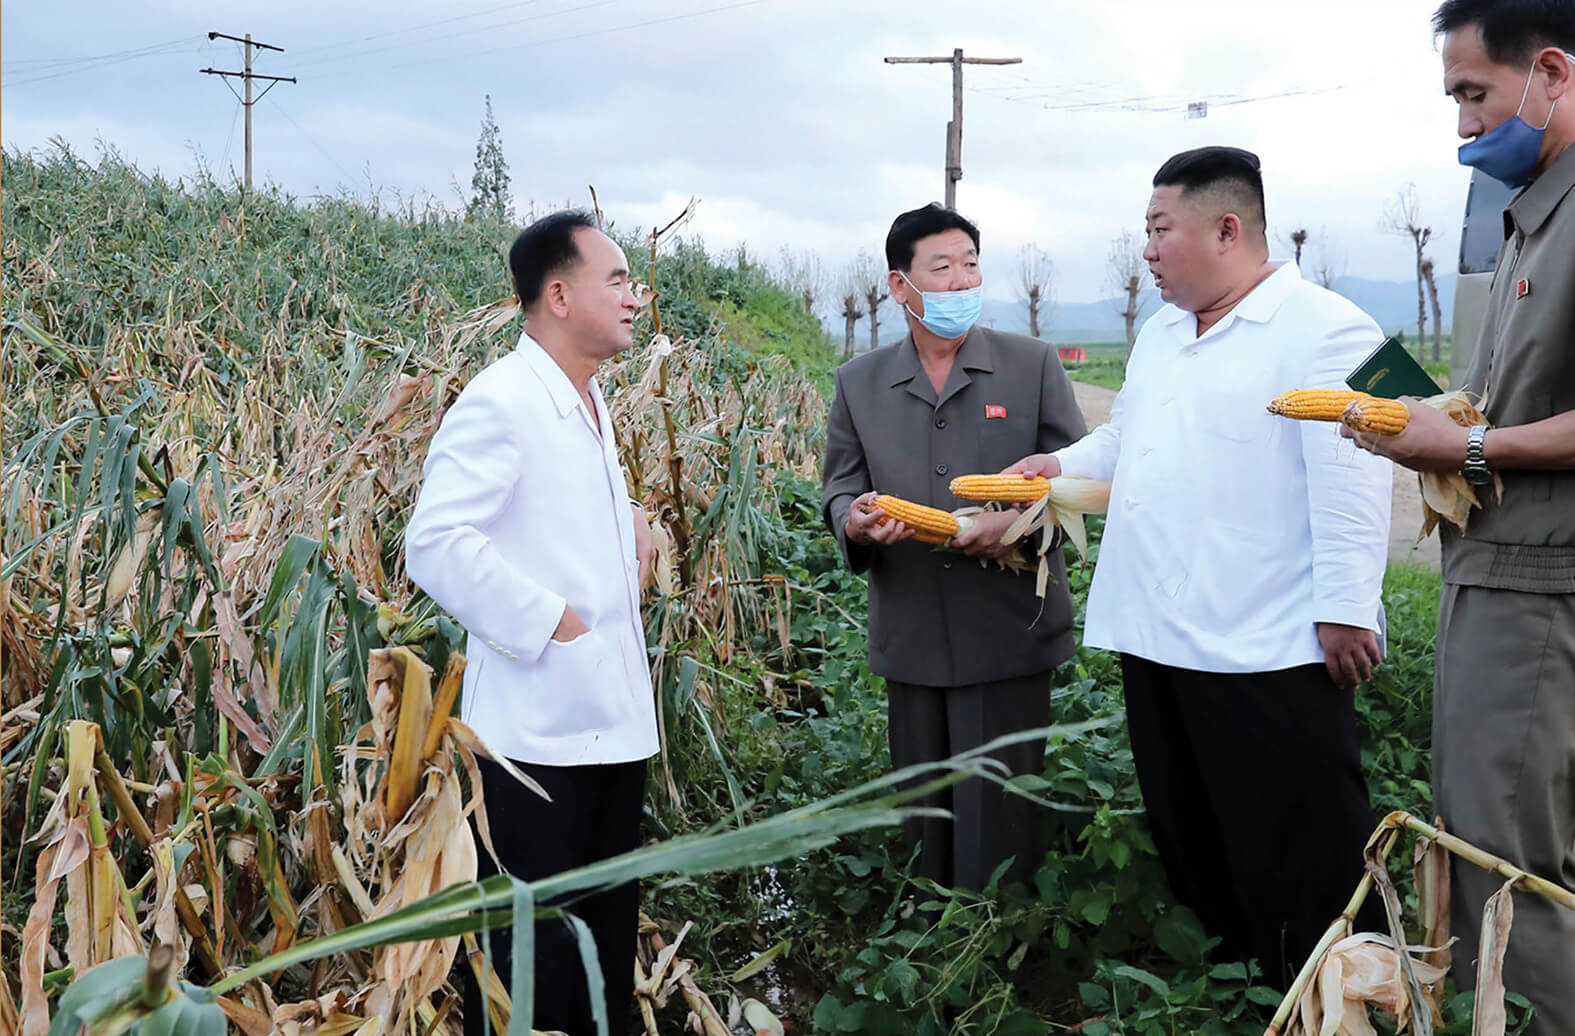 Kim Jong Un grasping the typhoon-damaged situation in August 2020